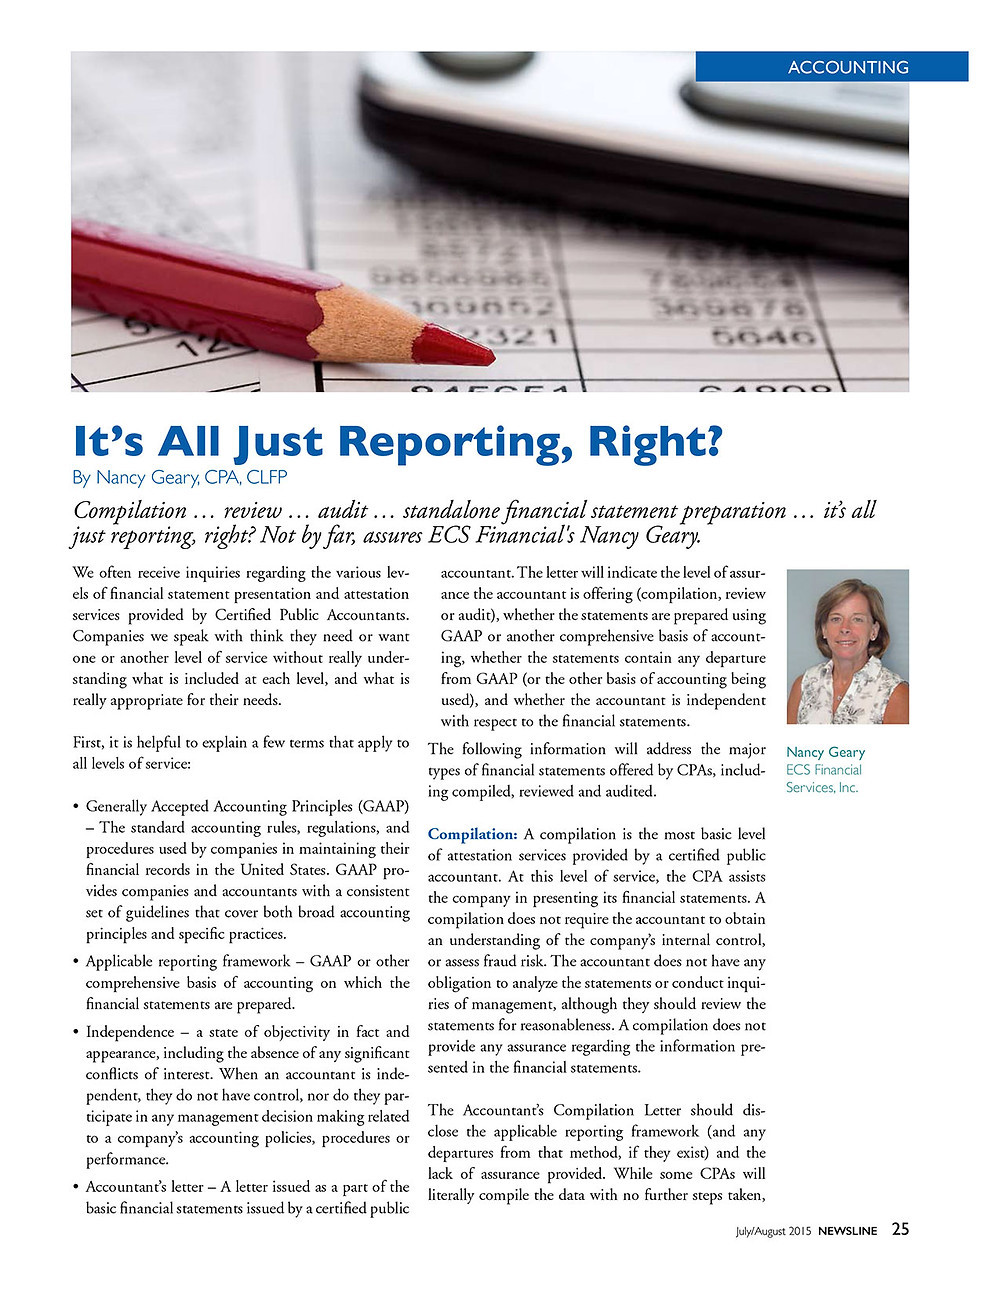 PDF Article - It's All Just Reporting, Right?